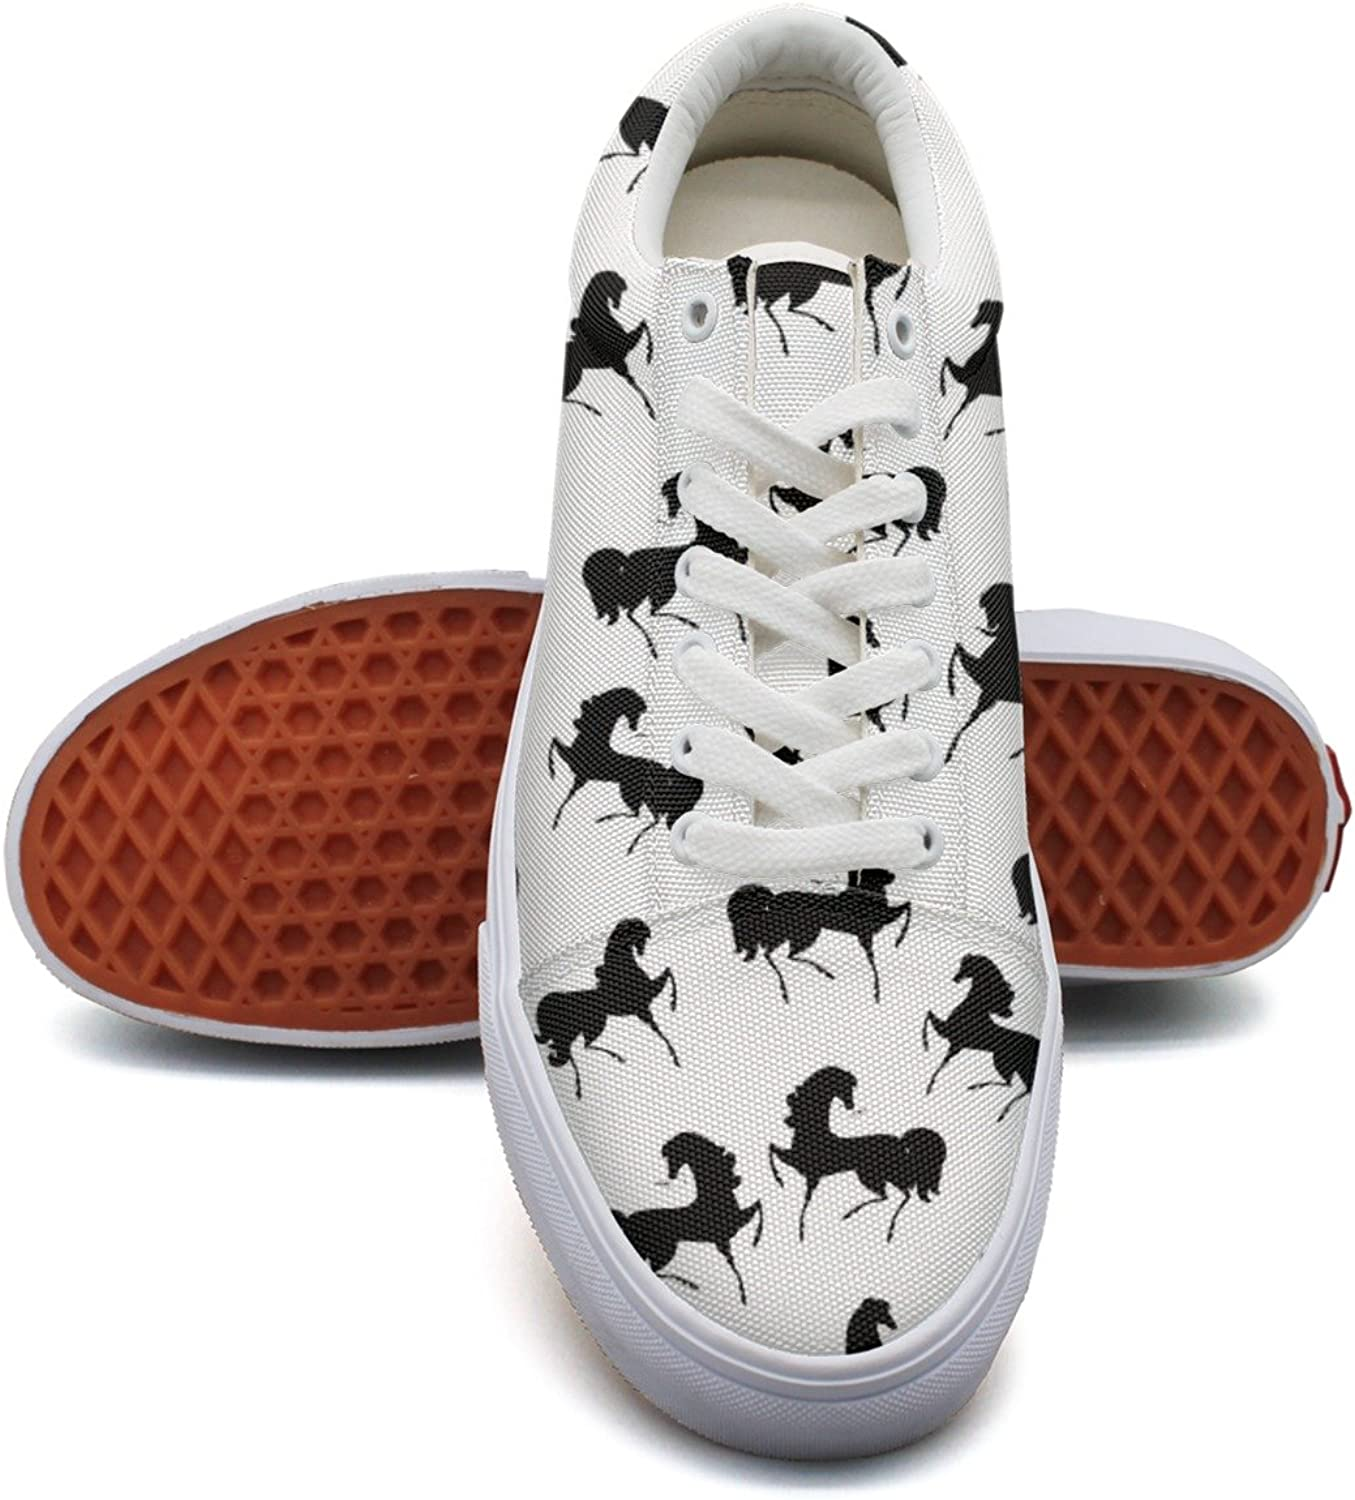 Retro Texture With Horses Women's Casual shoes Canvas Athletic New Gym